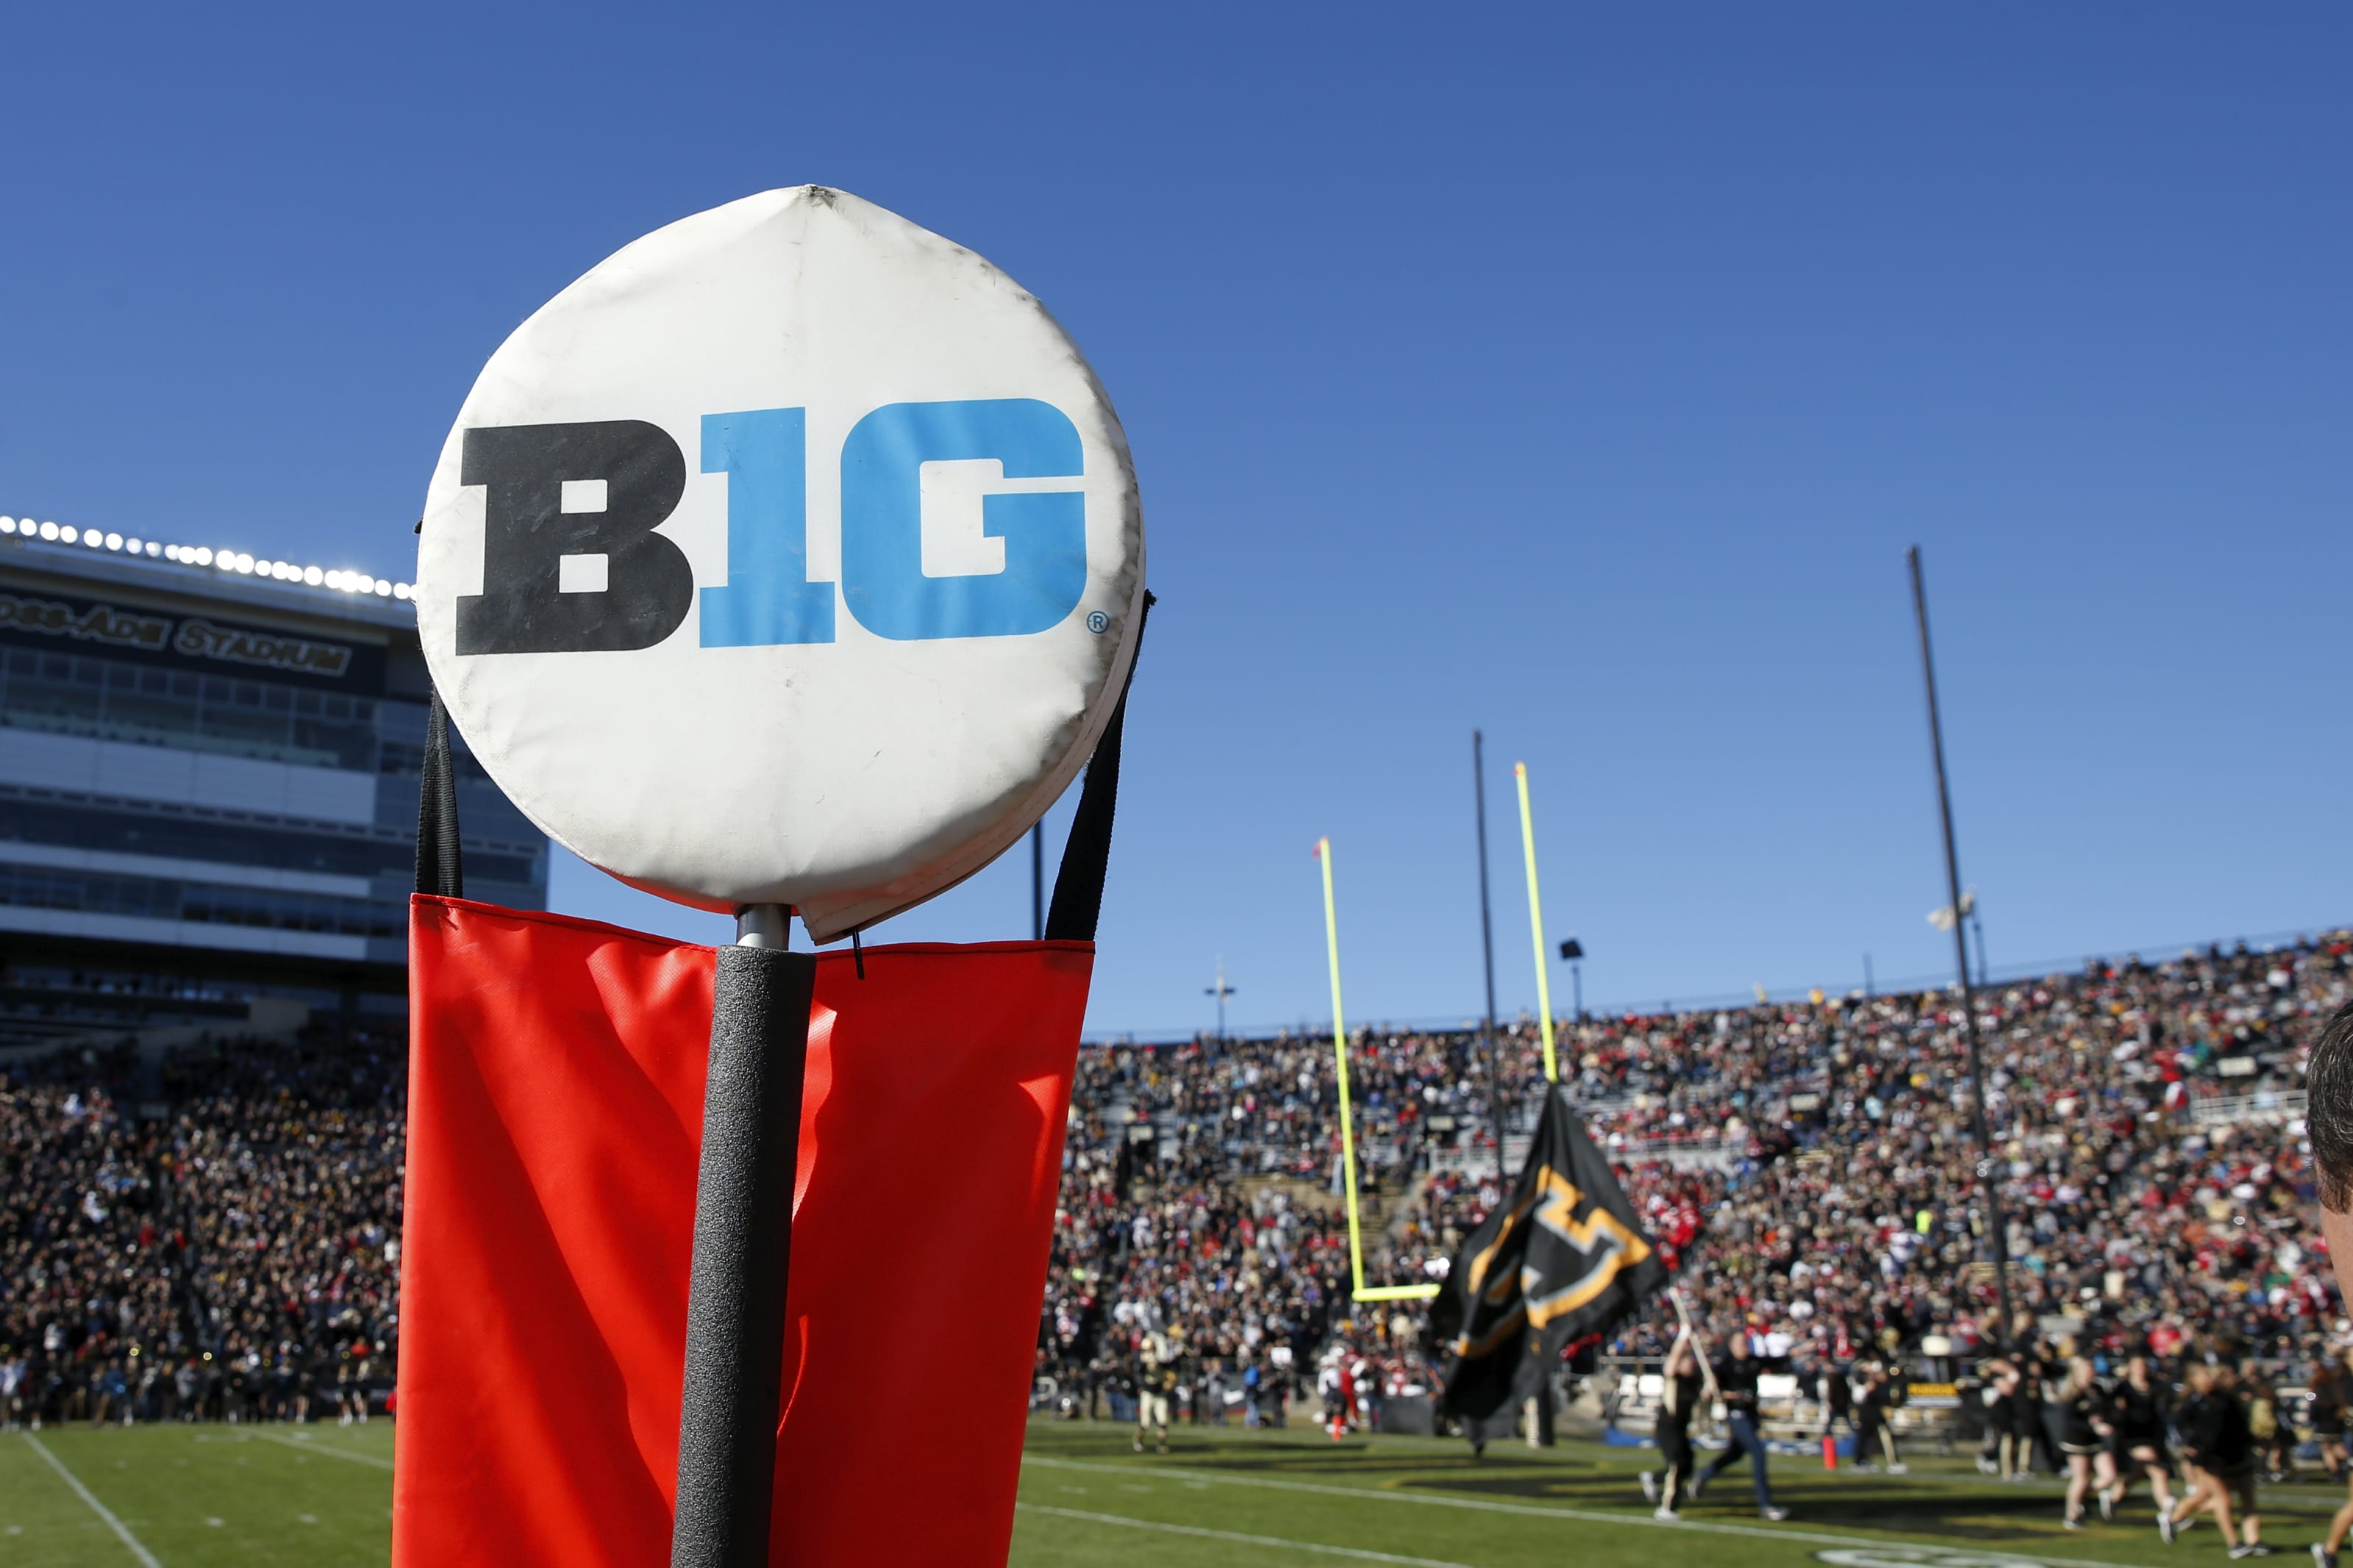 football ten conference teams spring played only college reasons cornhuskers nebraska badgers wisconsin season fall maryland schedule cancelled right sports